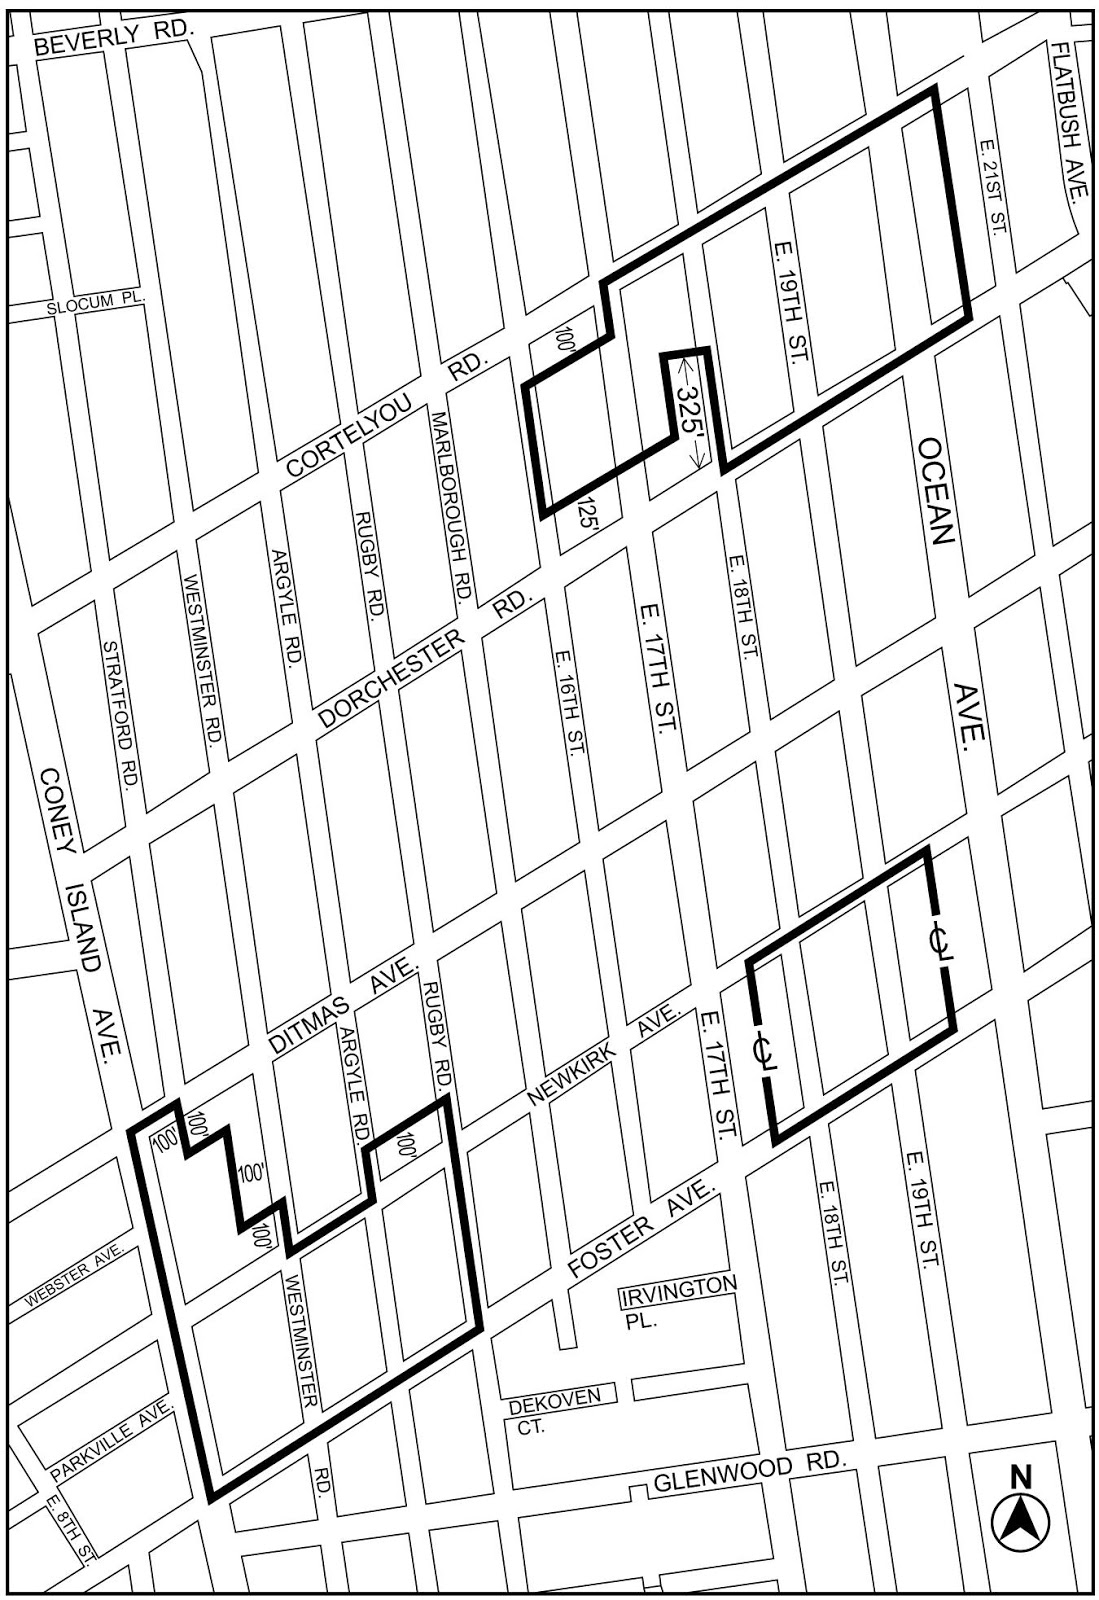 Zoning Resolutions F-Inclusionary Housing Designated Areas and Mandatory Inclusionary Housing Areas_2.75